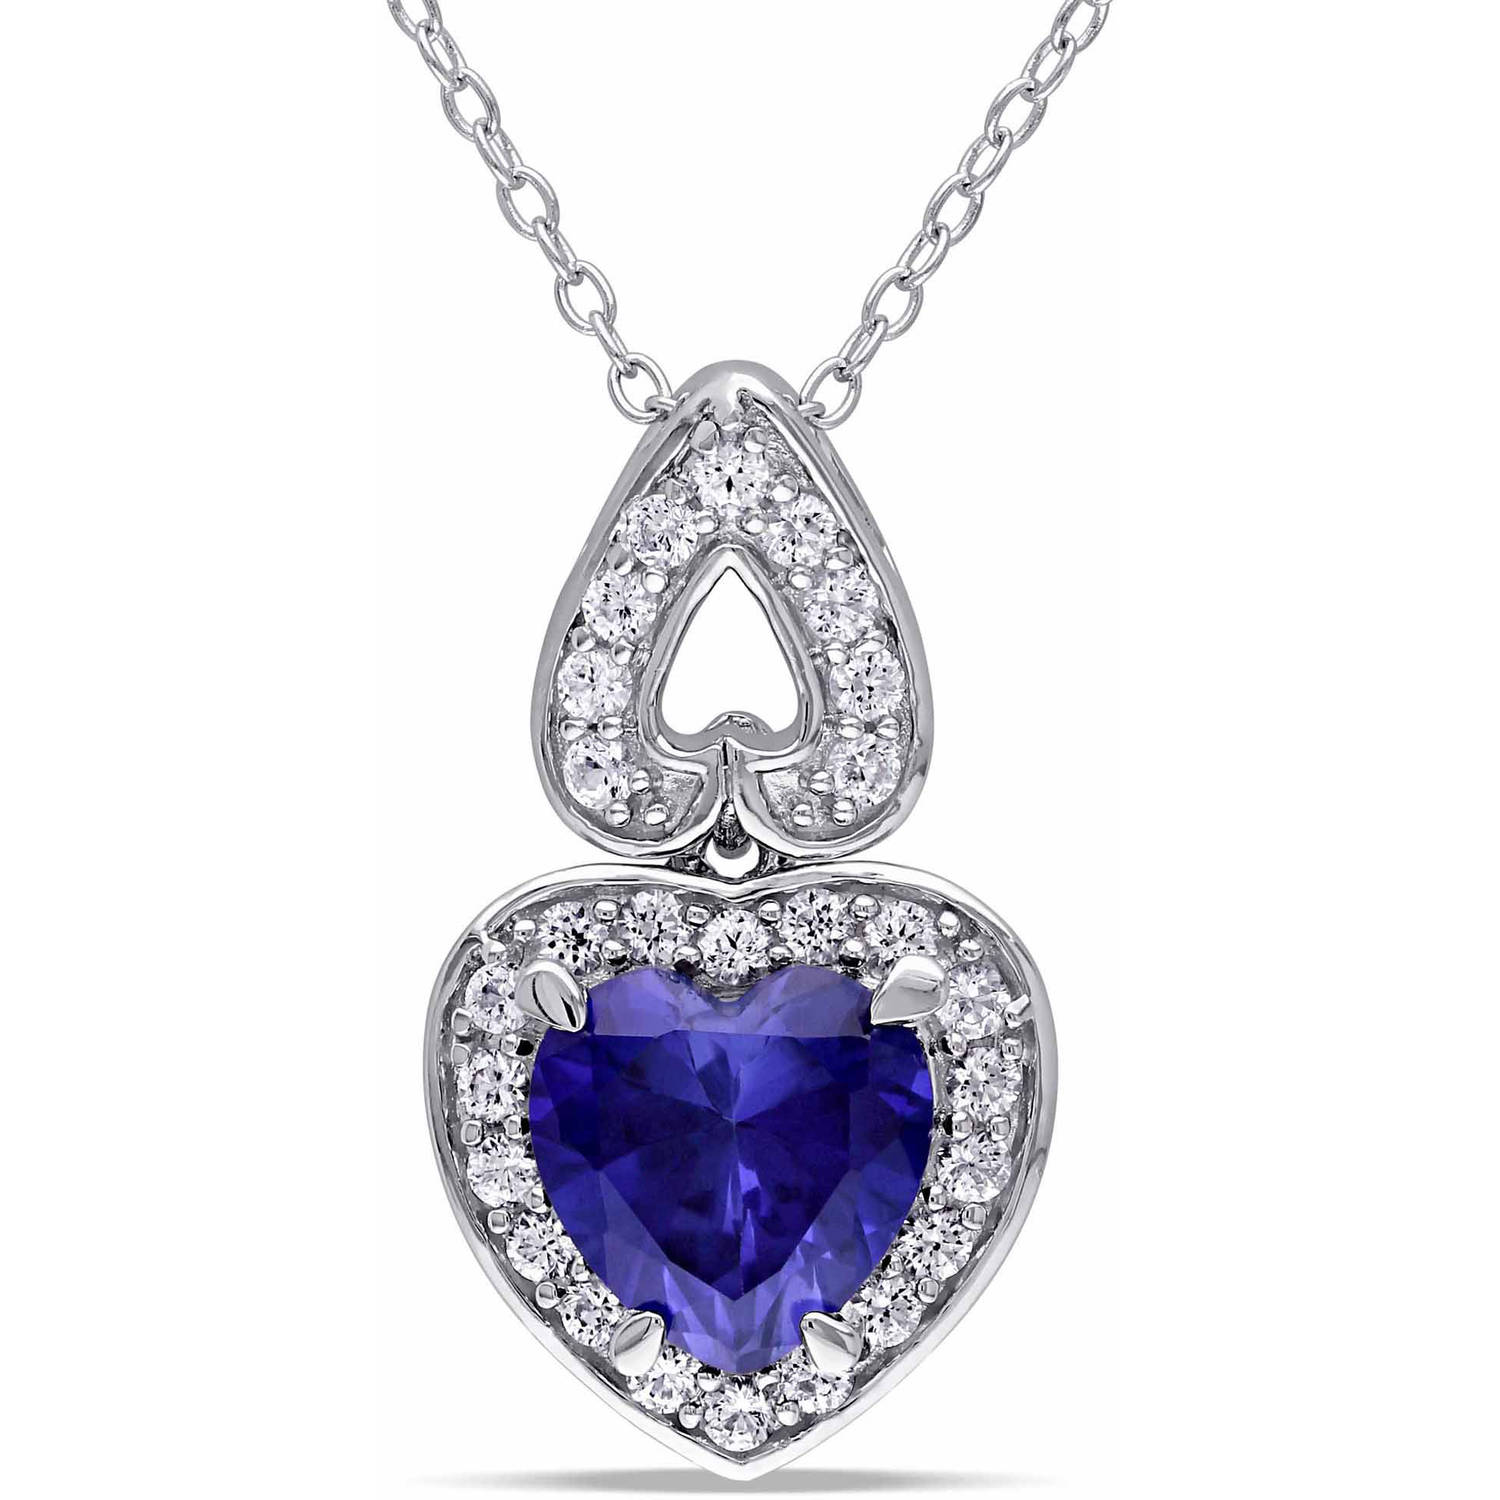 Tangelo 3-1/10 Carat T.G.W. Created Blue and White Sapphire Sterling Silver Halo Heart Pendant, 18""